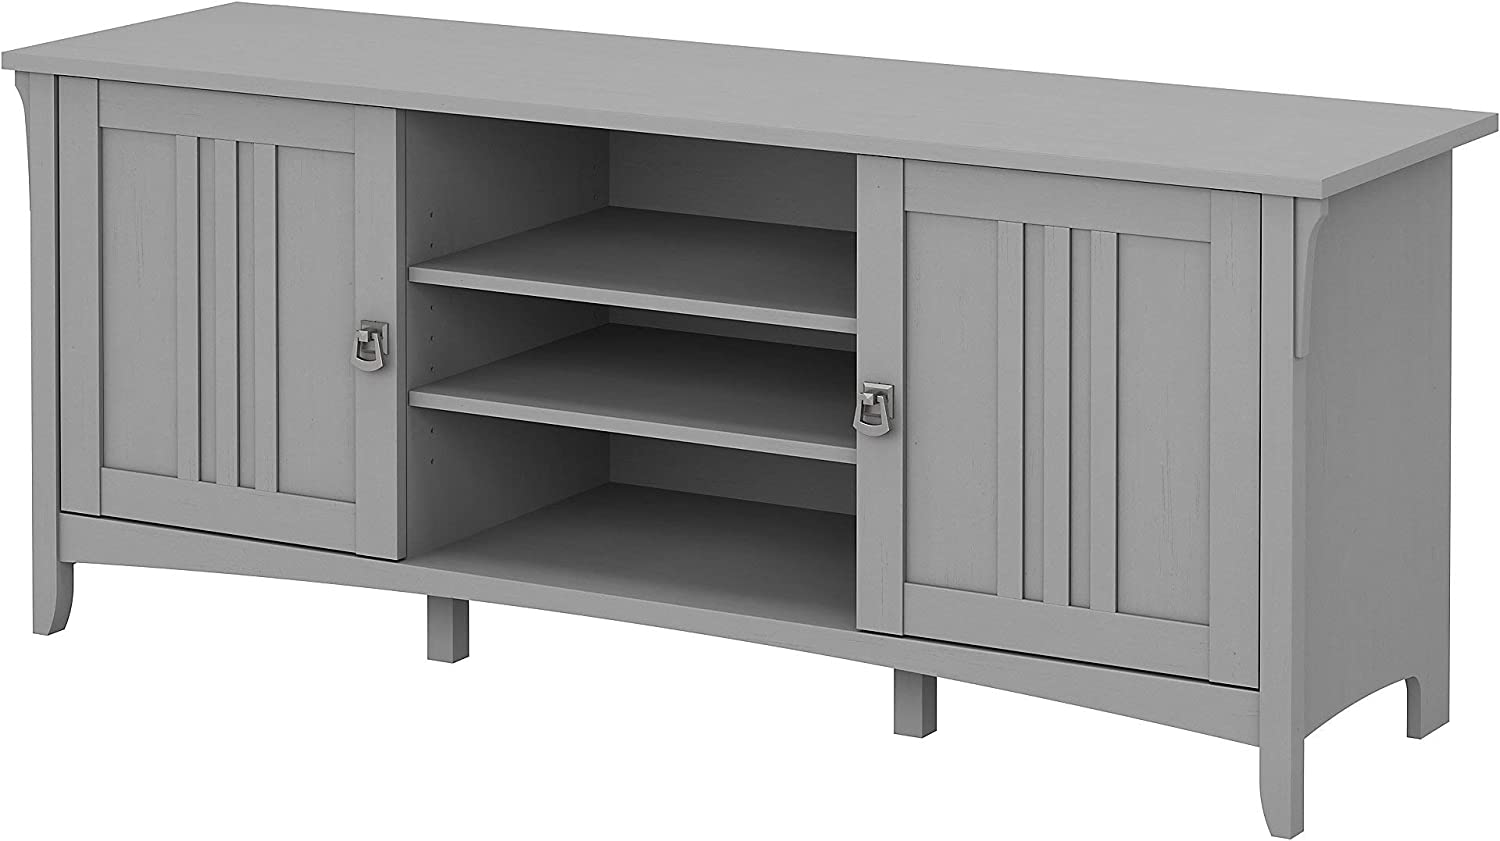 Bush Furniture Salinas 60W TV Stand for 70 Inch TV in Cape Cod Gray